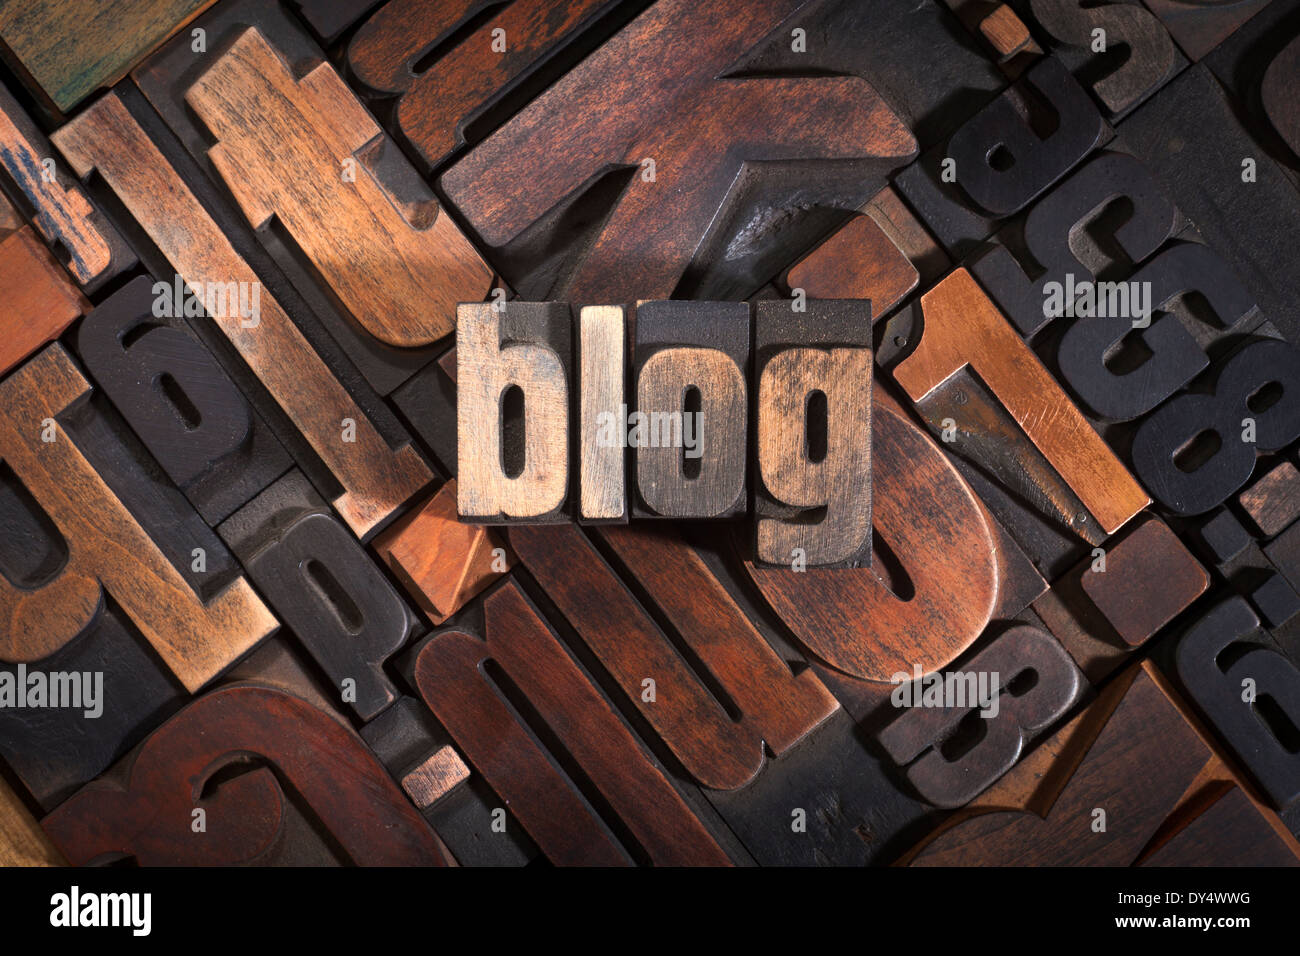 Blog, word written with antique letterpress printing blocks on random letters background - Stock Image